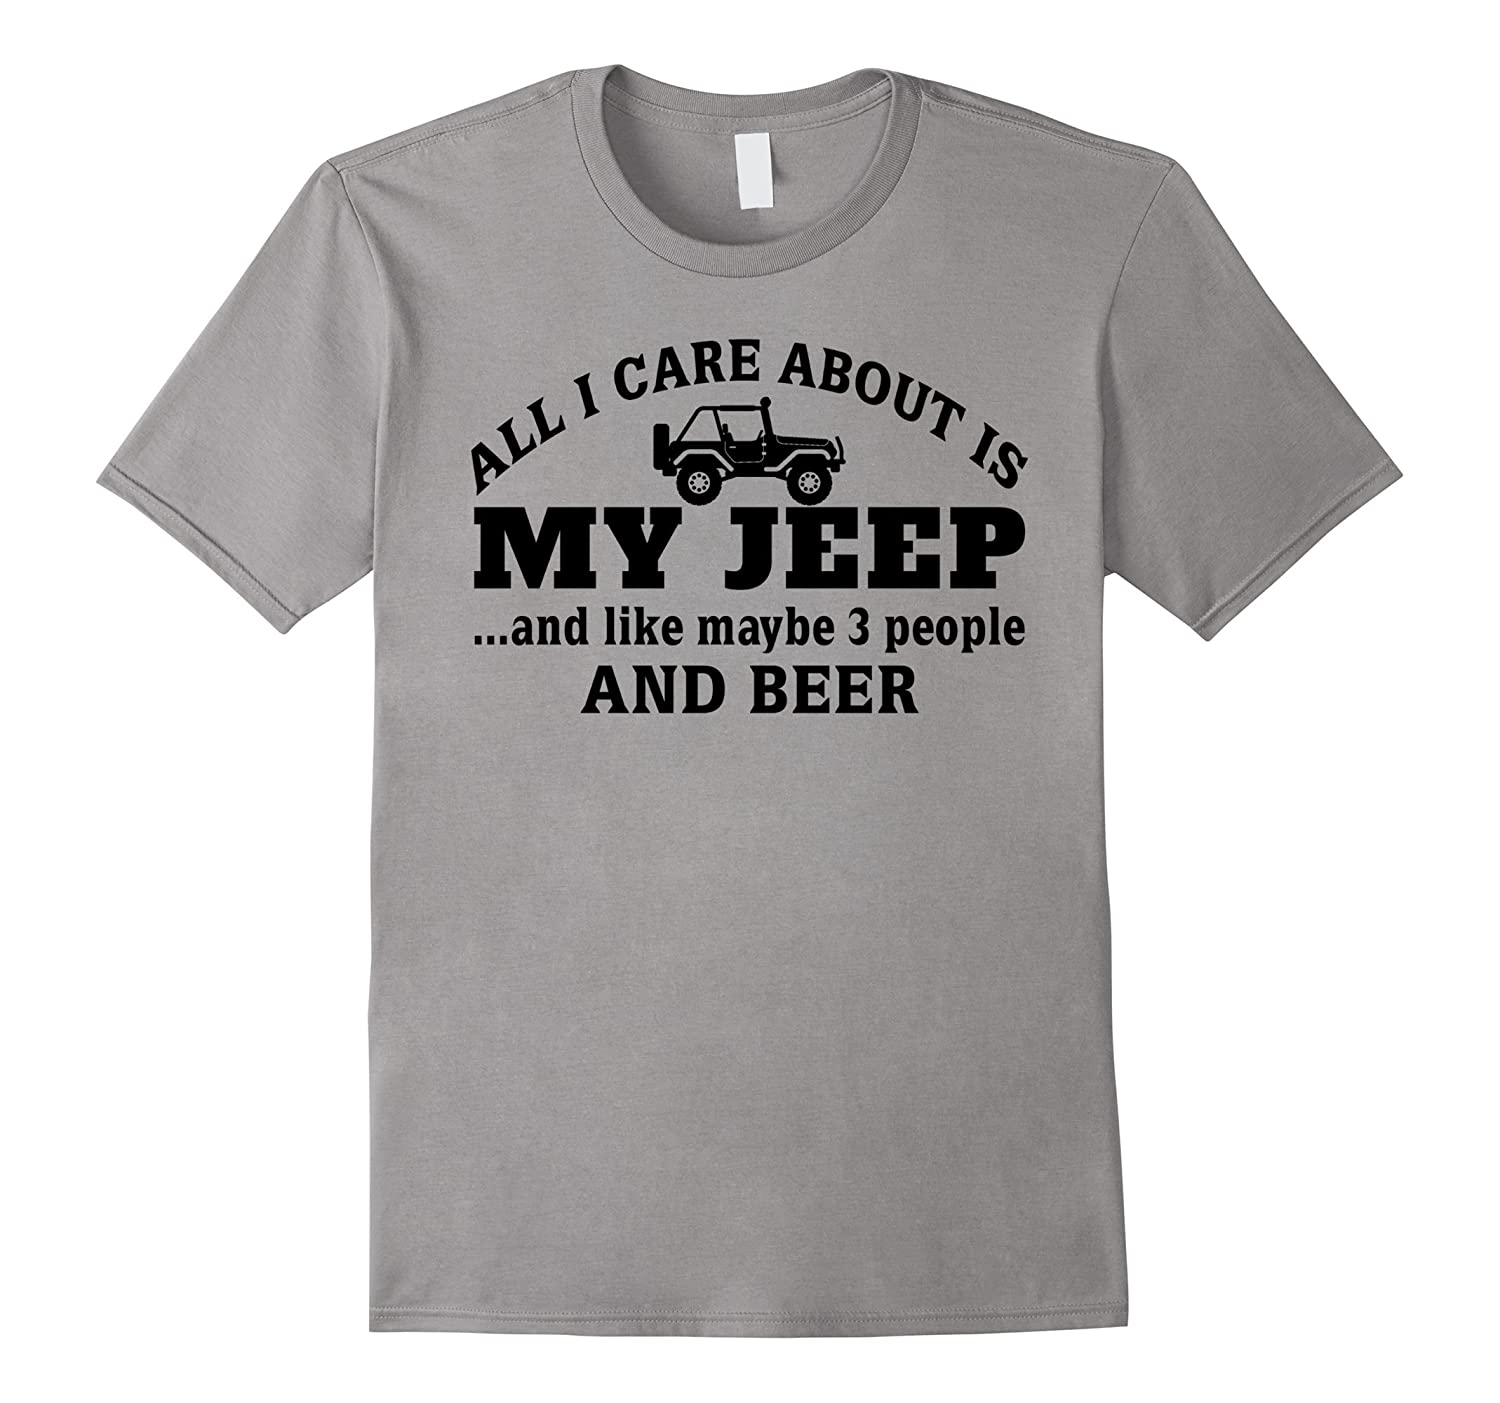 All I Care About My Jeep And Maybe Like 3 People And Beer-CD